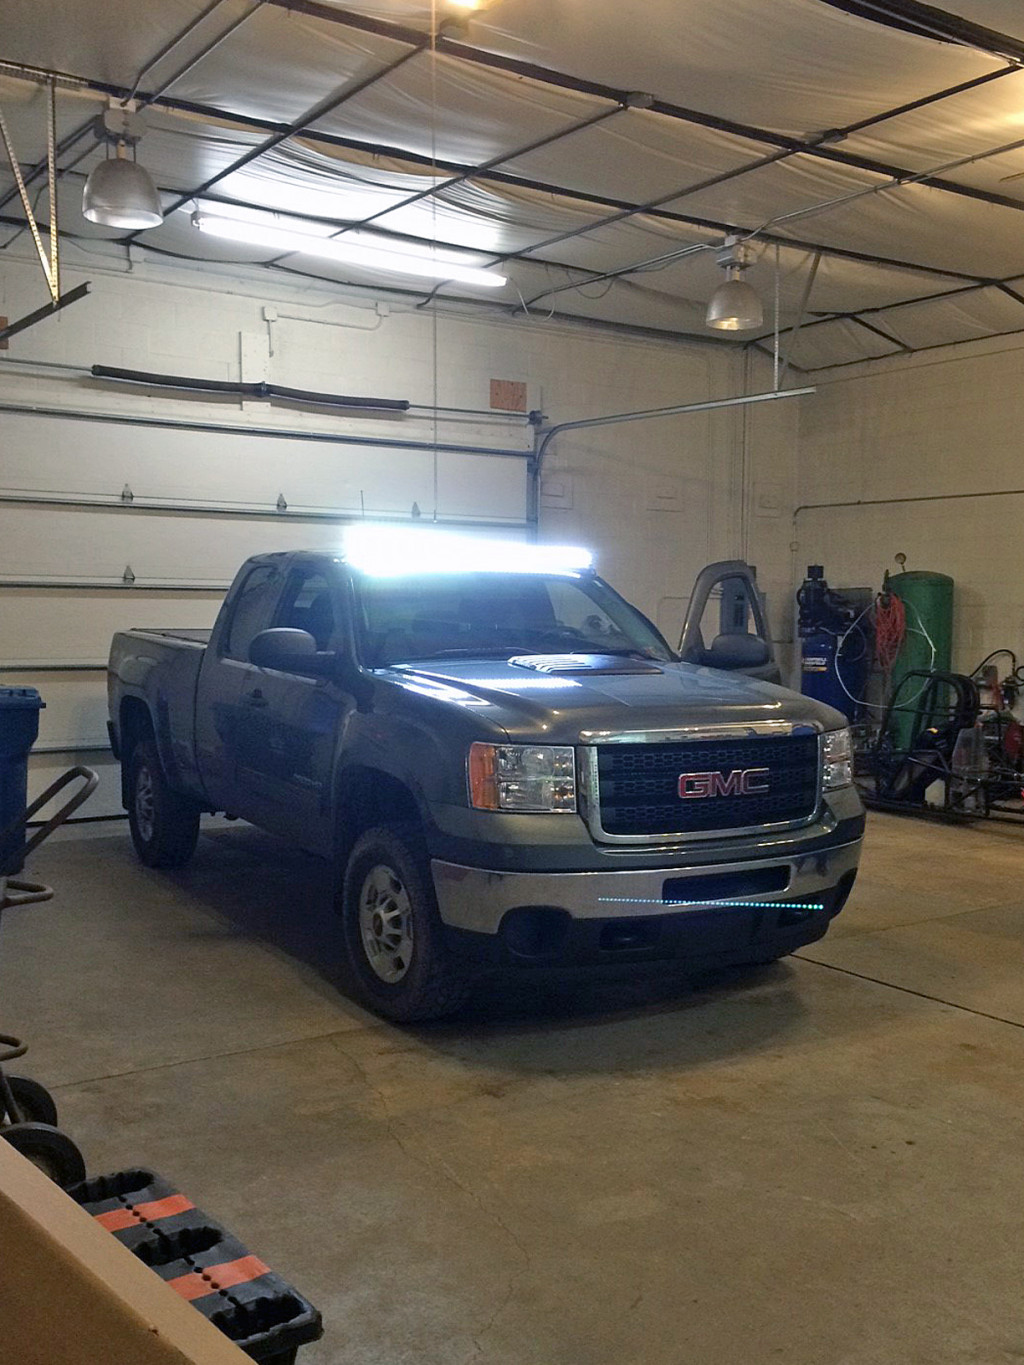 Putco Luminix Light Bar instructions Lighbar LED Installation install installed on GMC Sierra Chevy Silverado by Global High Performance Best wholesale auto parts distributor exporter